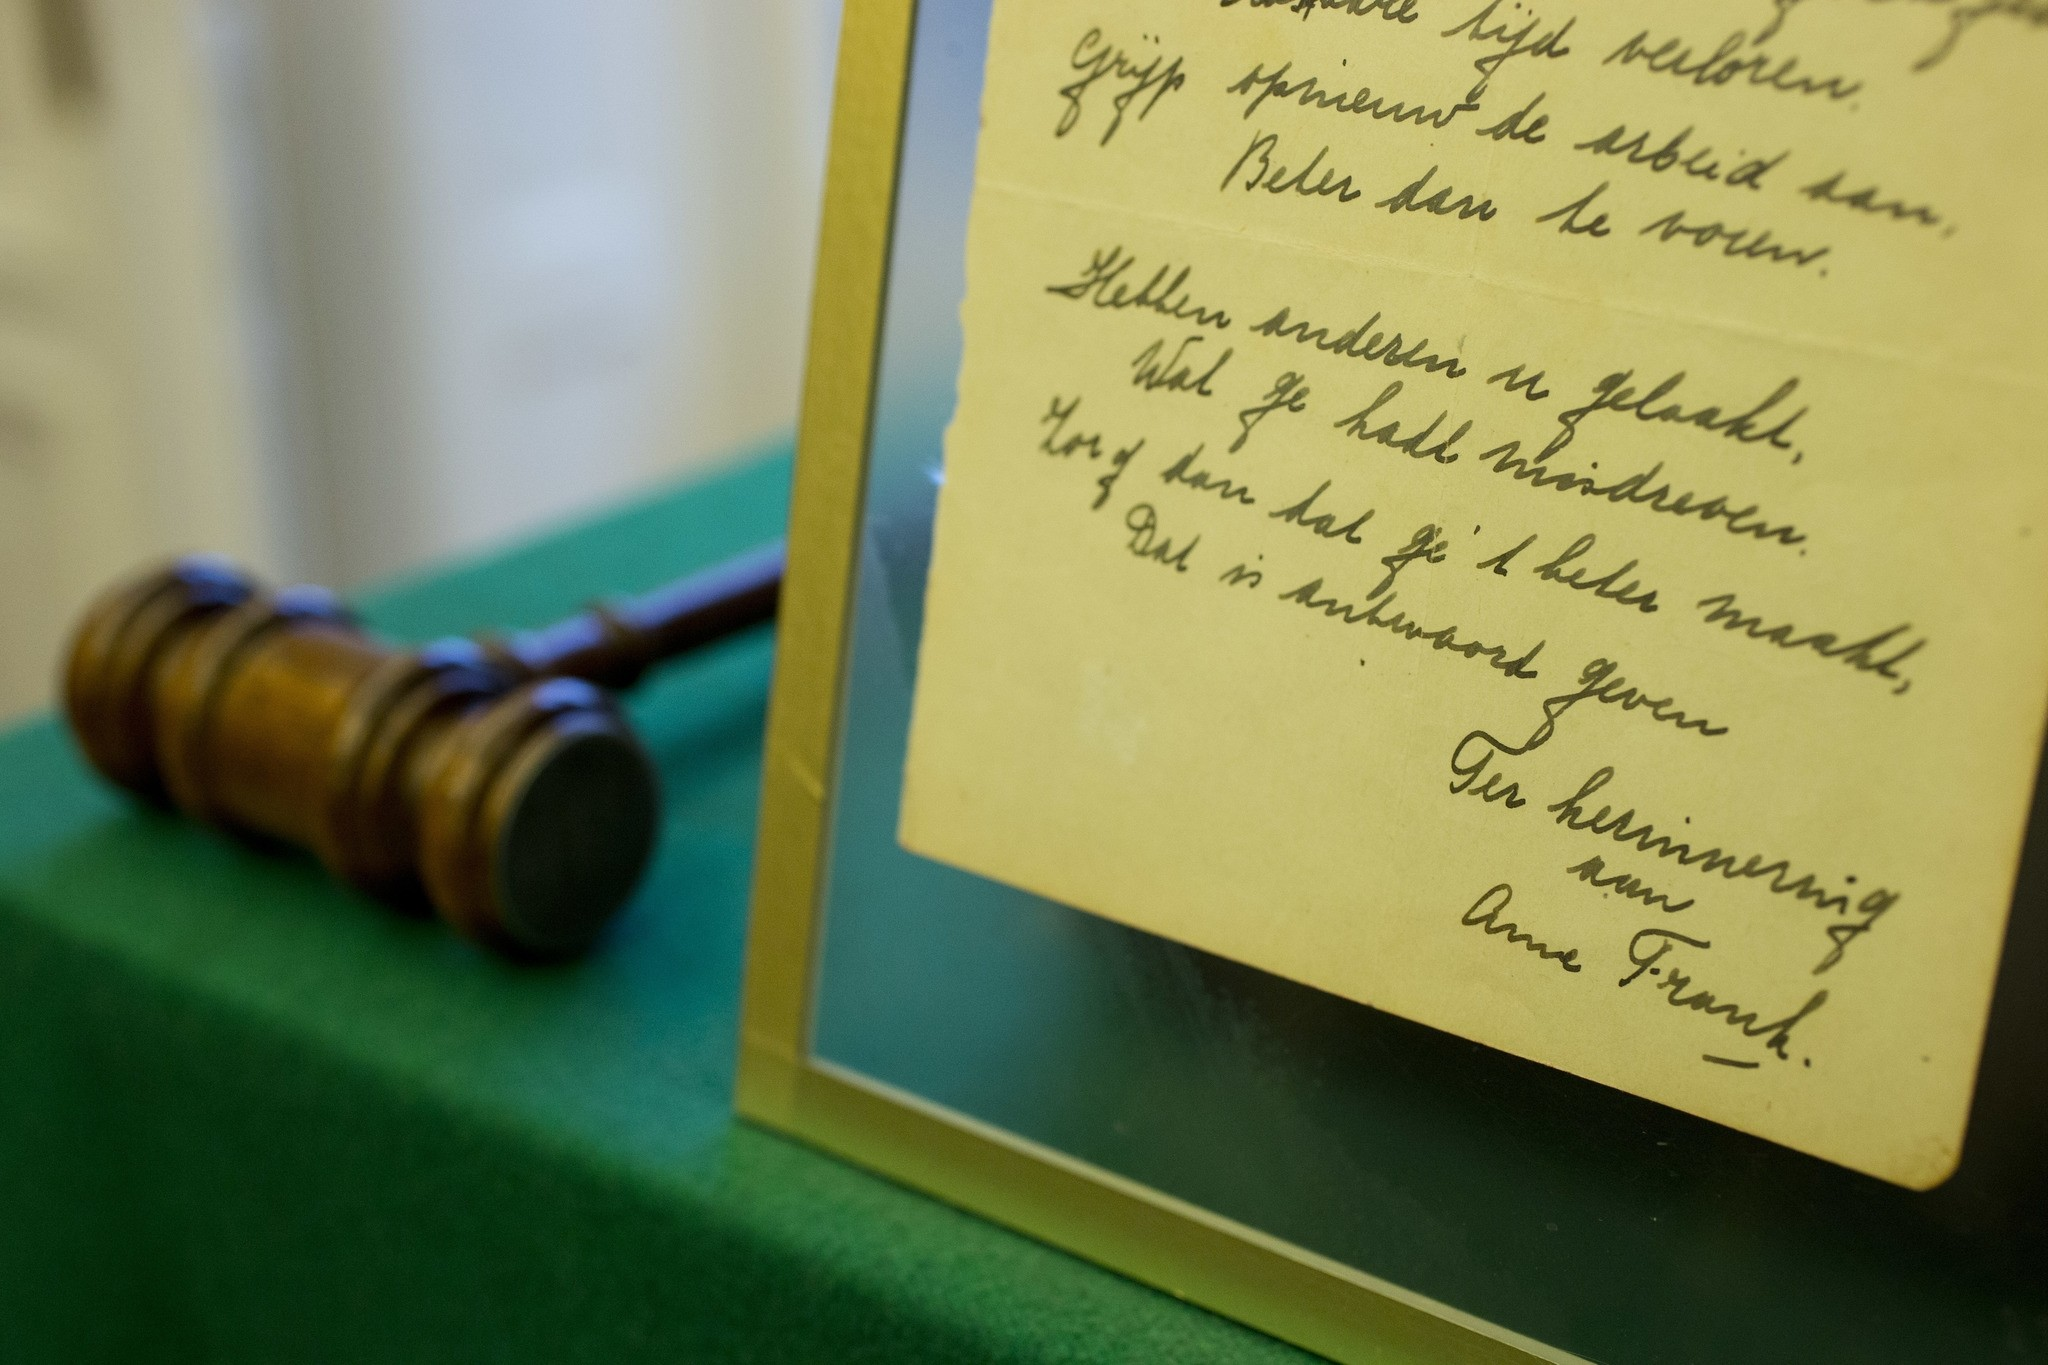 A short poem by Anne Frank, handwritten and dated in Amsterdam on March 28, 1942, is displayed at Bubb Kuyper auction house. (AP Photo)